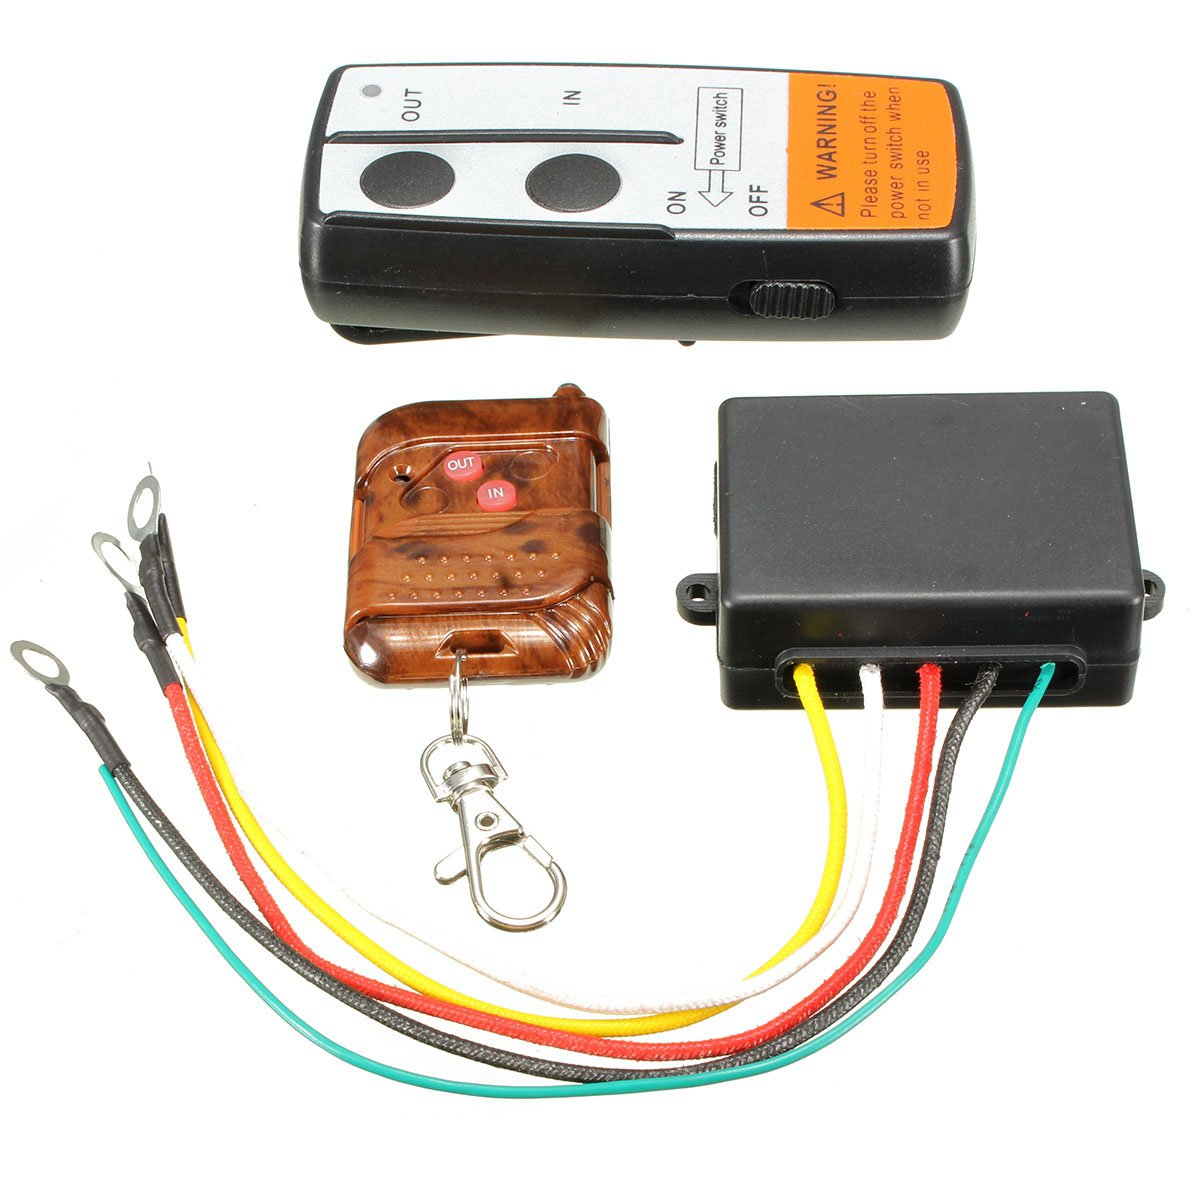 Wireless Remote Control - SODIAL(R) Electric Wireless Winch Remote Control Handset 12V Heavy Duty For Truck Atv SUV 060623